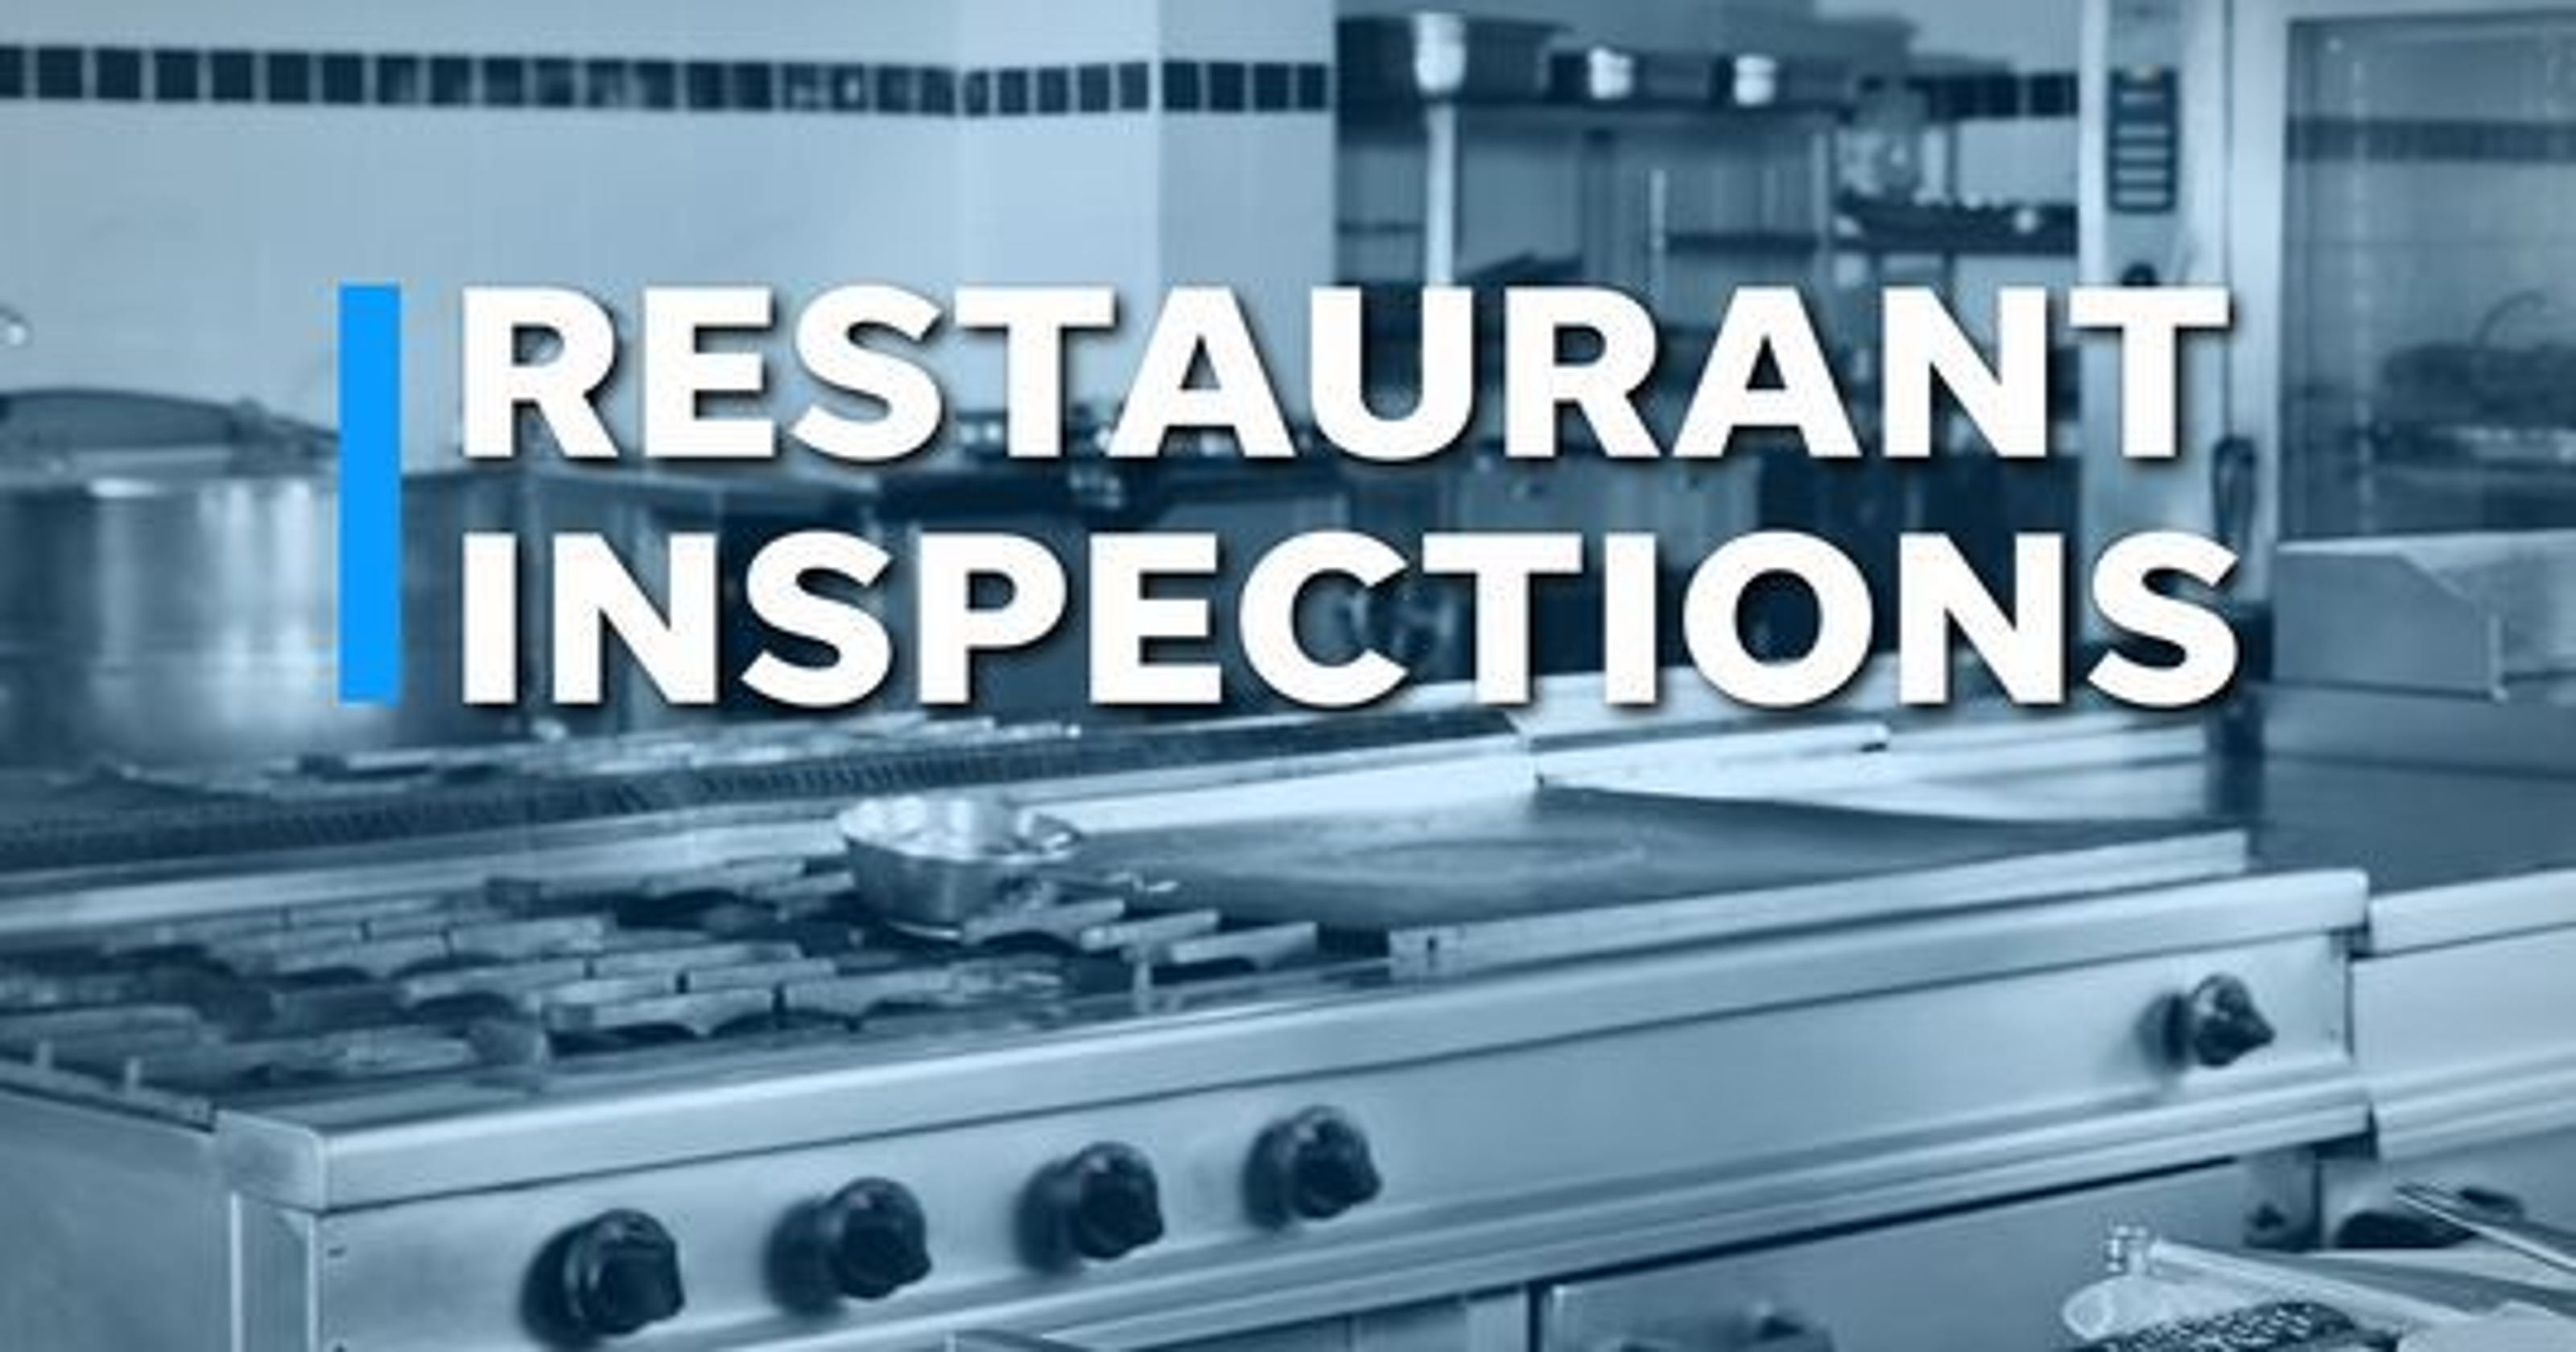 Restaurant inspections: Things that make you go \'ew\'